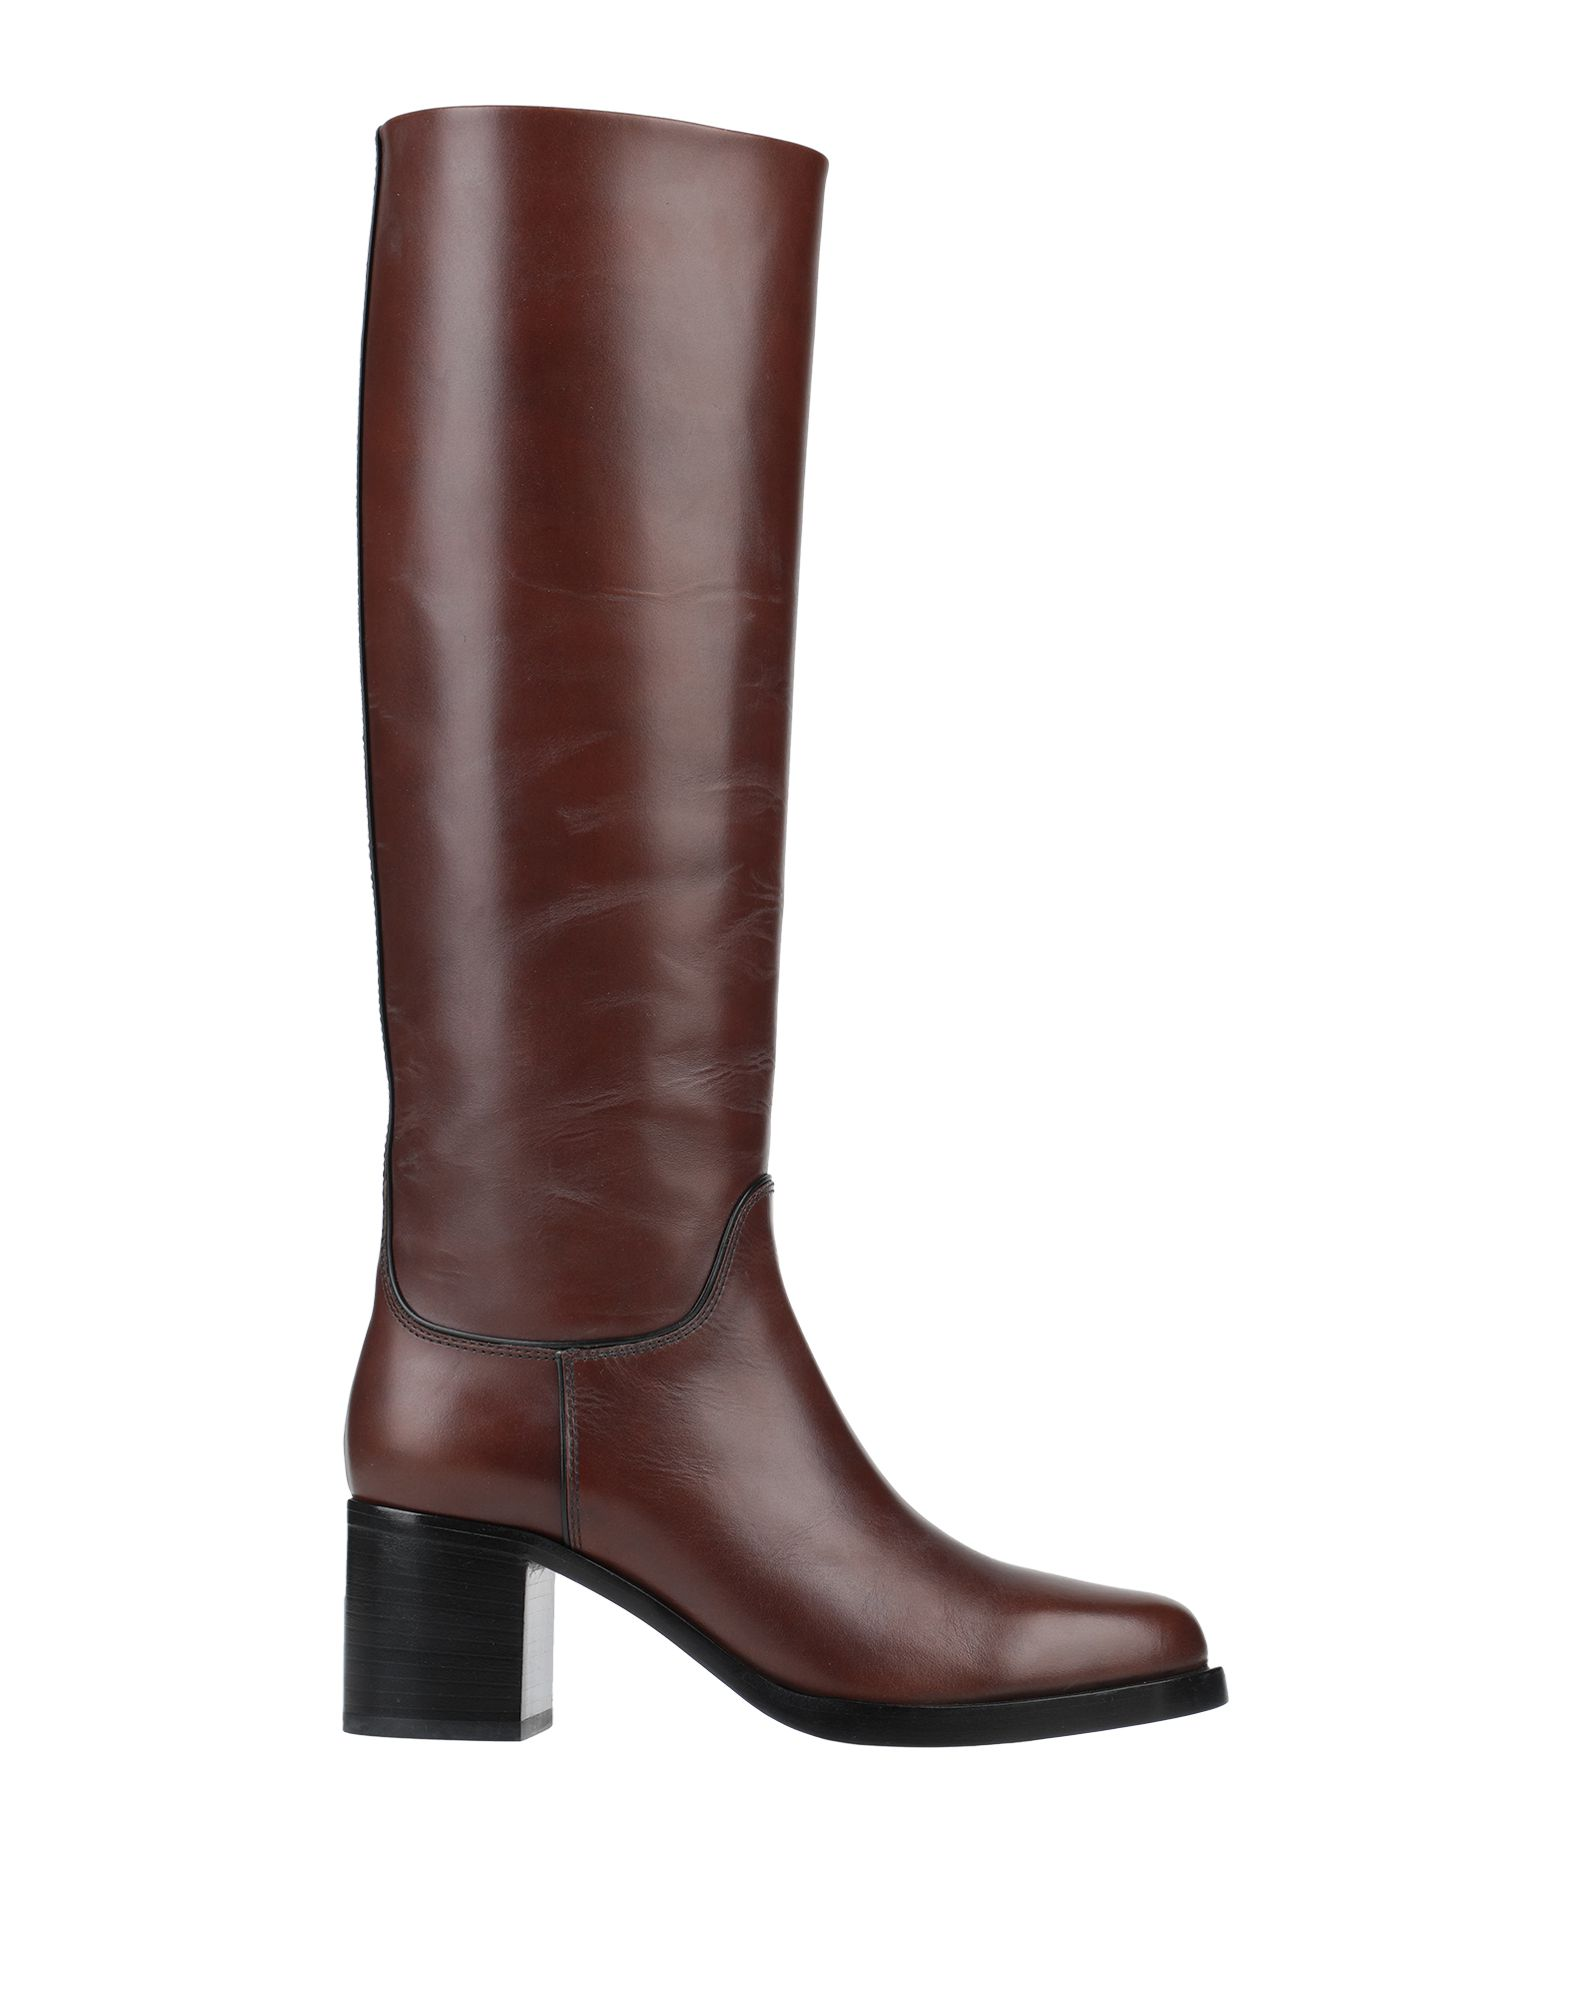 GIORGIO ARMANI Boots. polished leather, no appliqués, solid color, round toeline, square heel, leather lining, leather/rubber sole, contains non-textile parts of animal origin. Soft Leather